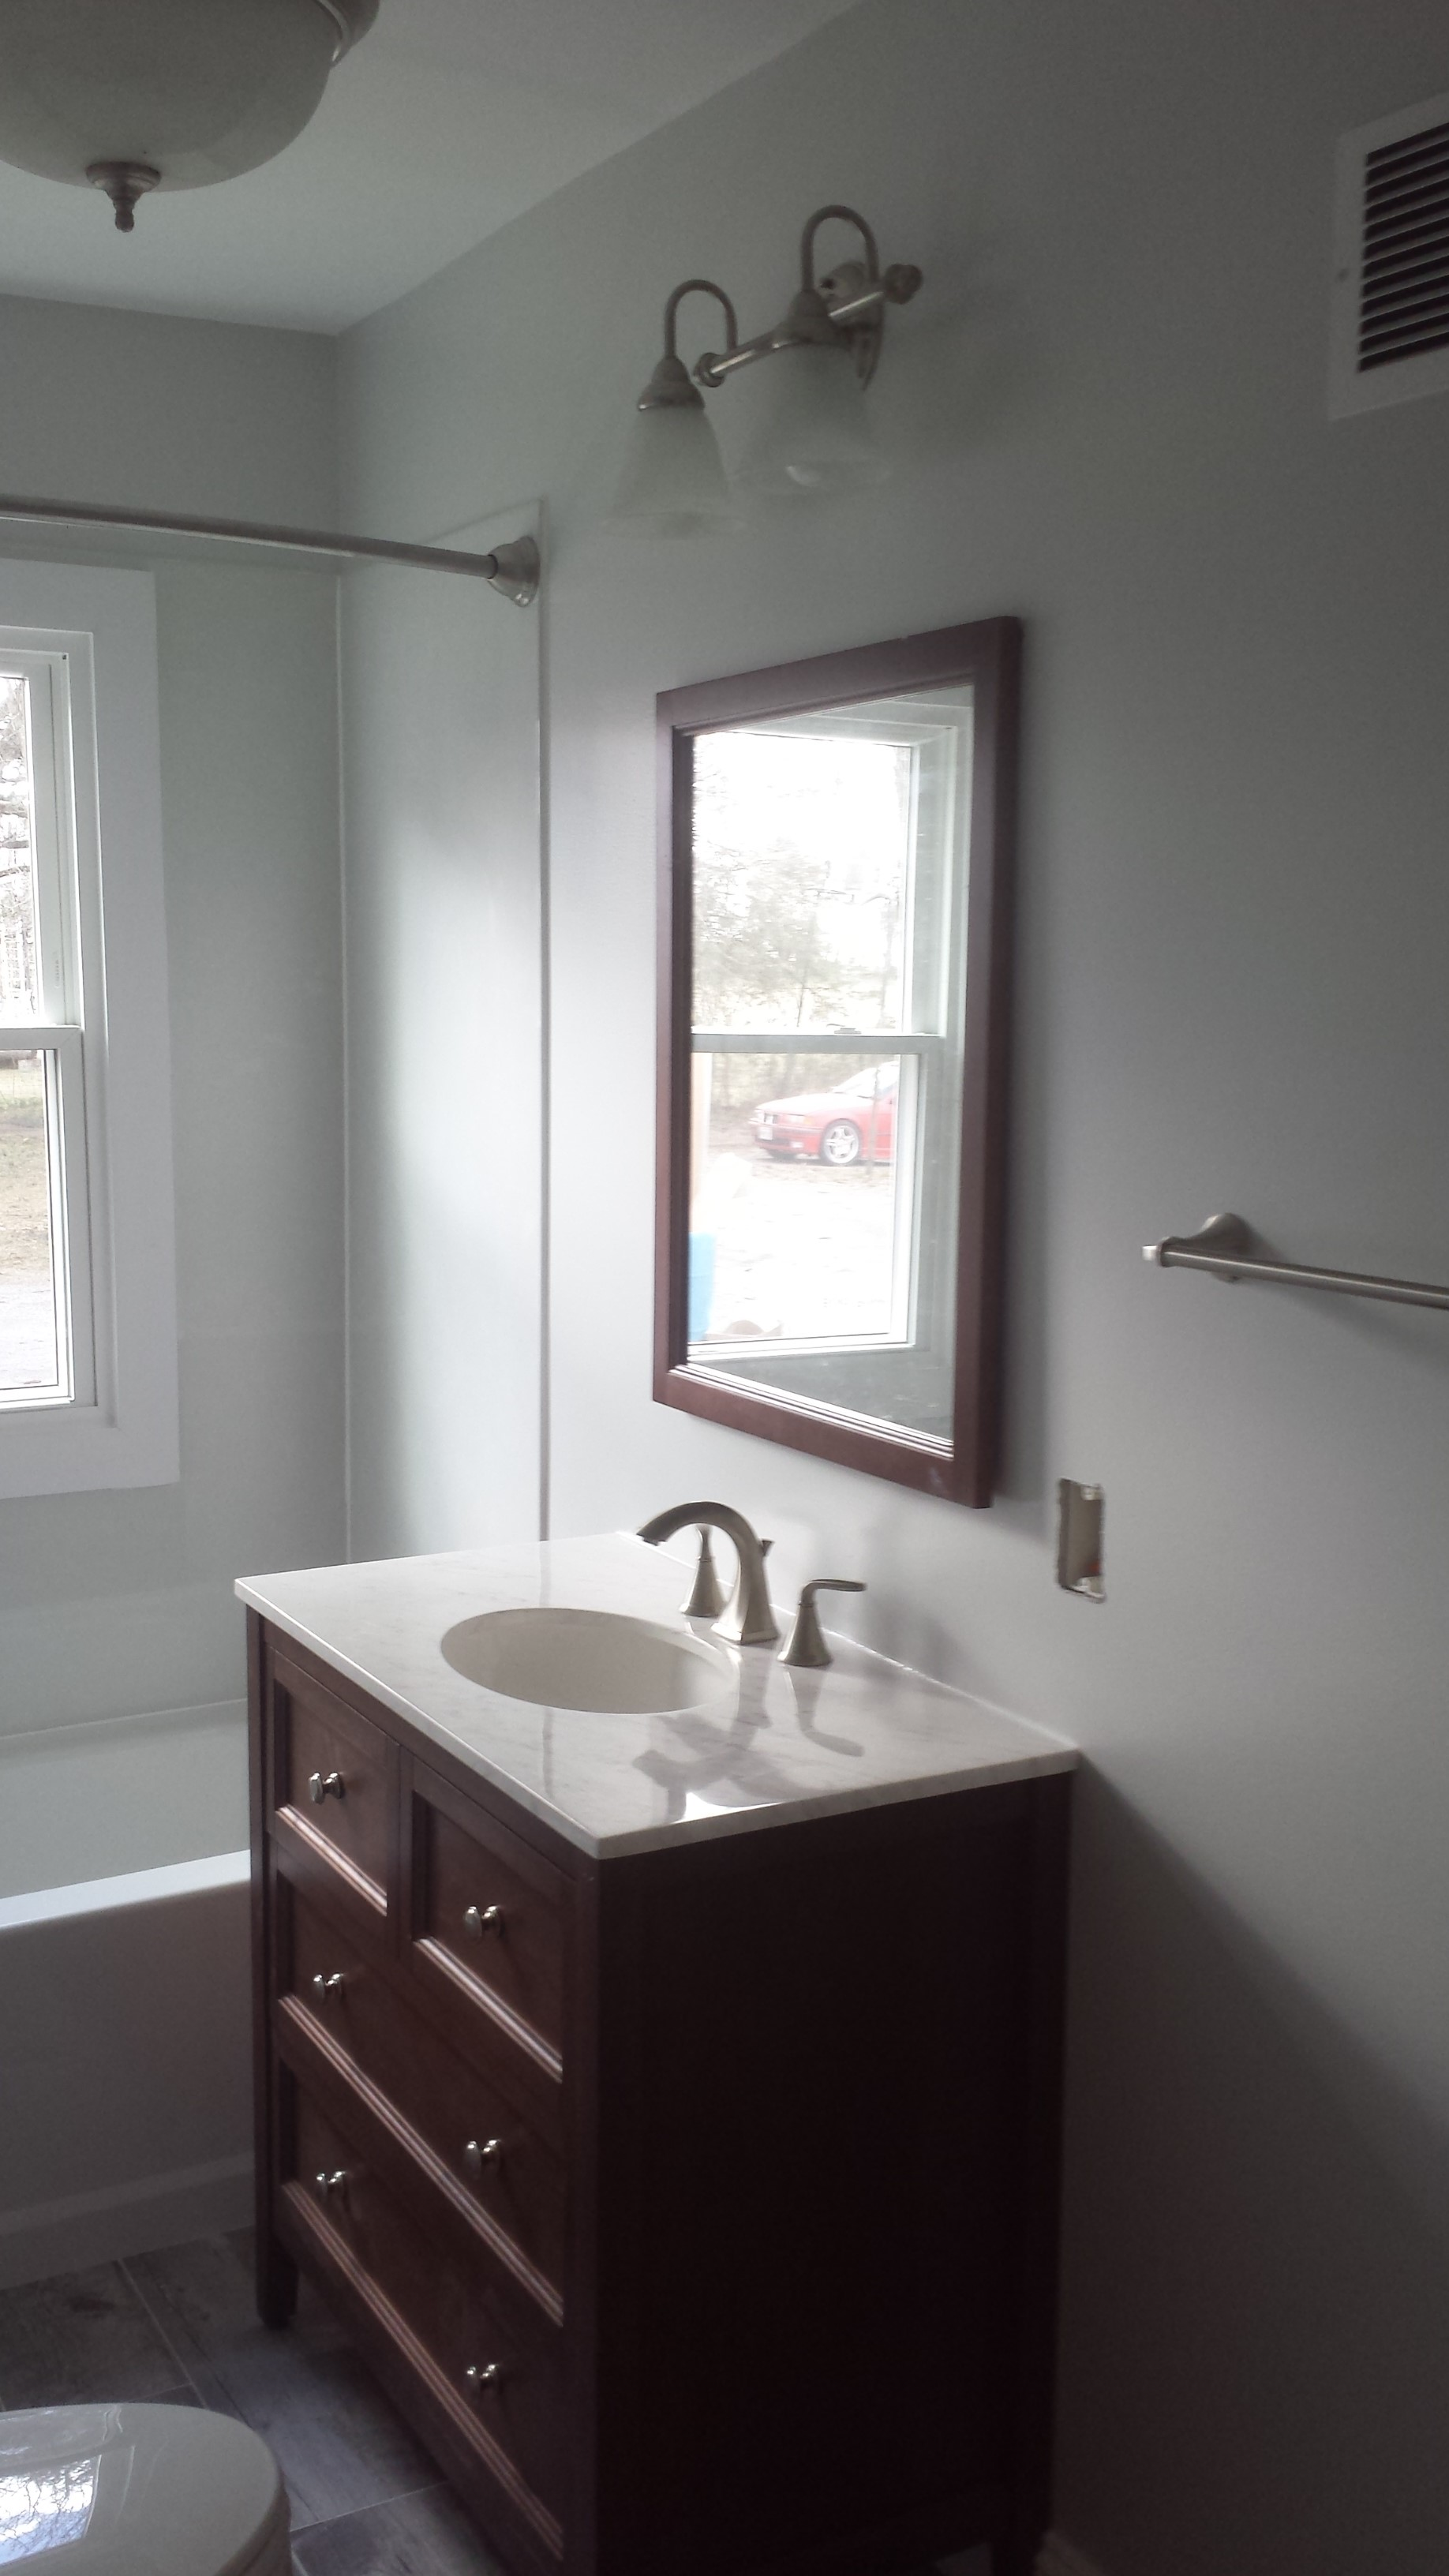 A Custom Bathroom Remodel Gets You The Space You Want - Bathroom remodel process